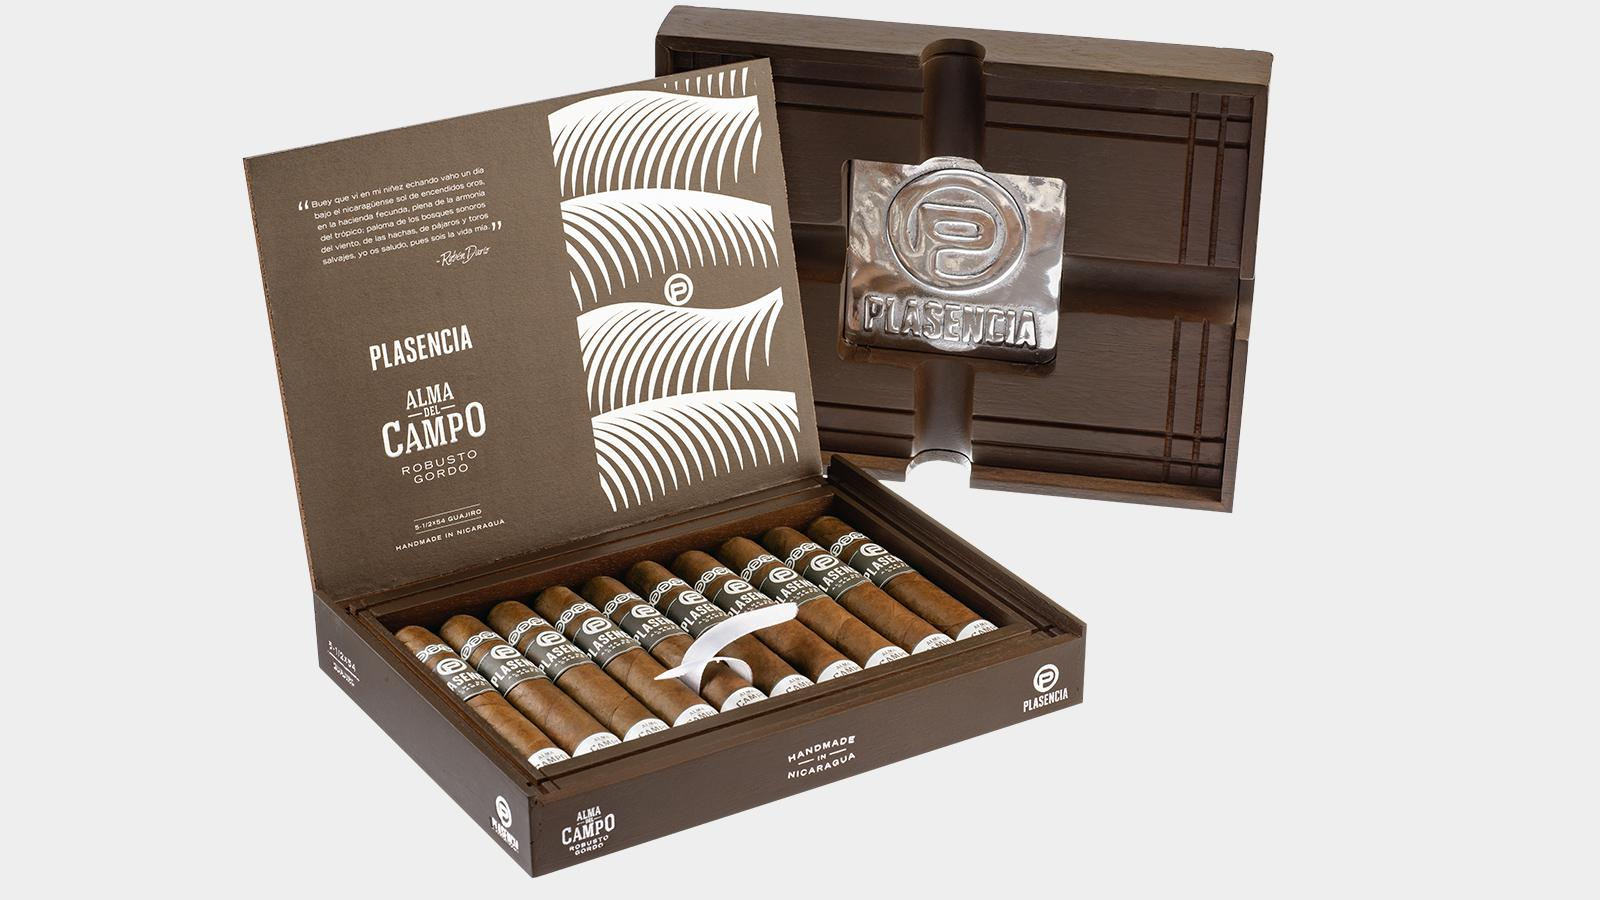 Plasencia 1865 Introducing Alma Del Campo At IPCPR Trade Show